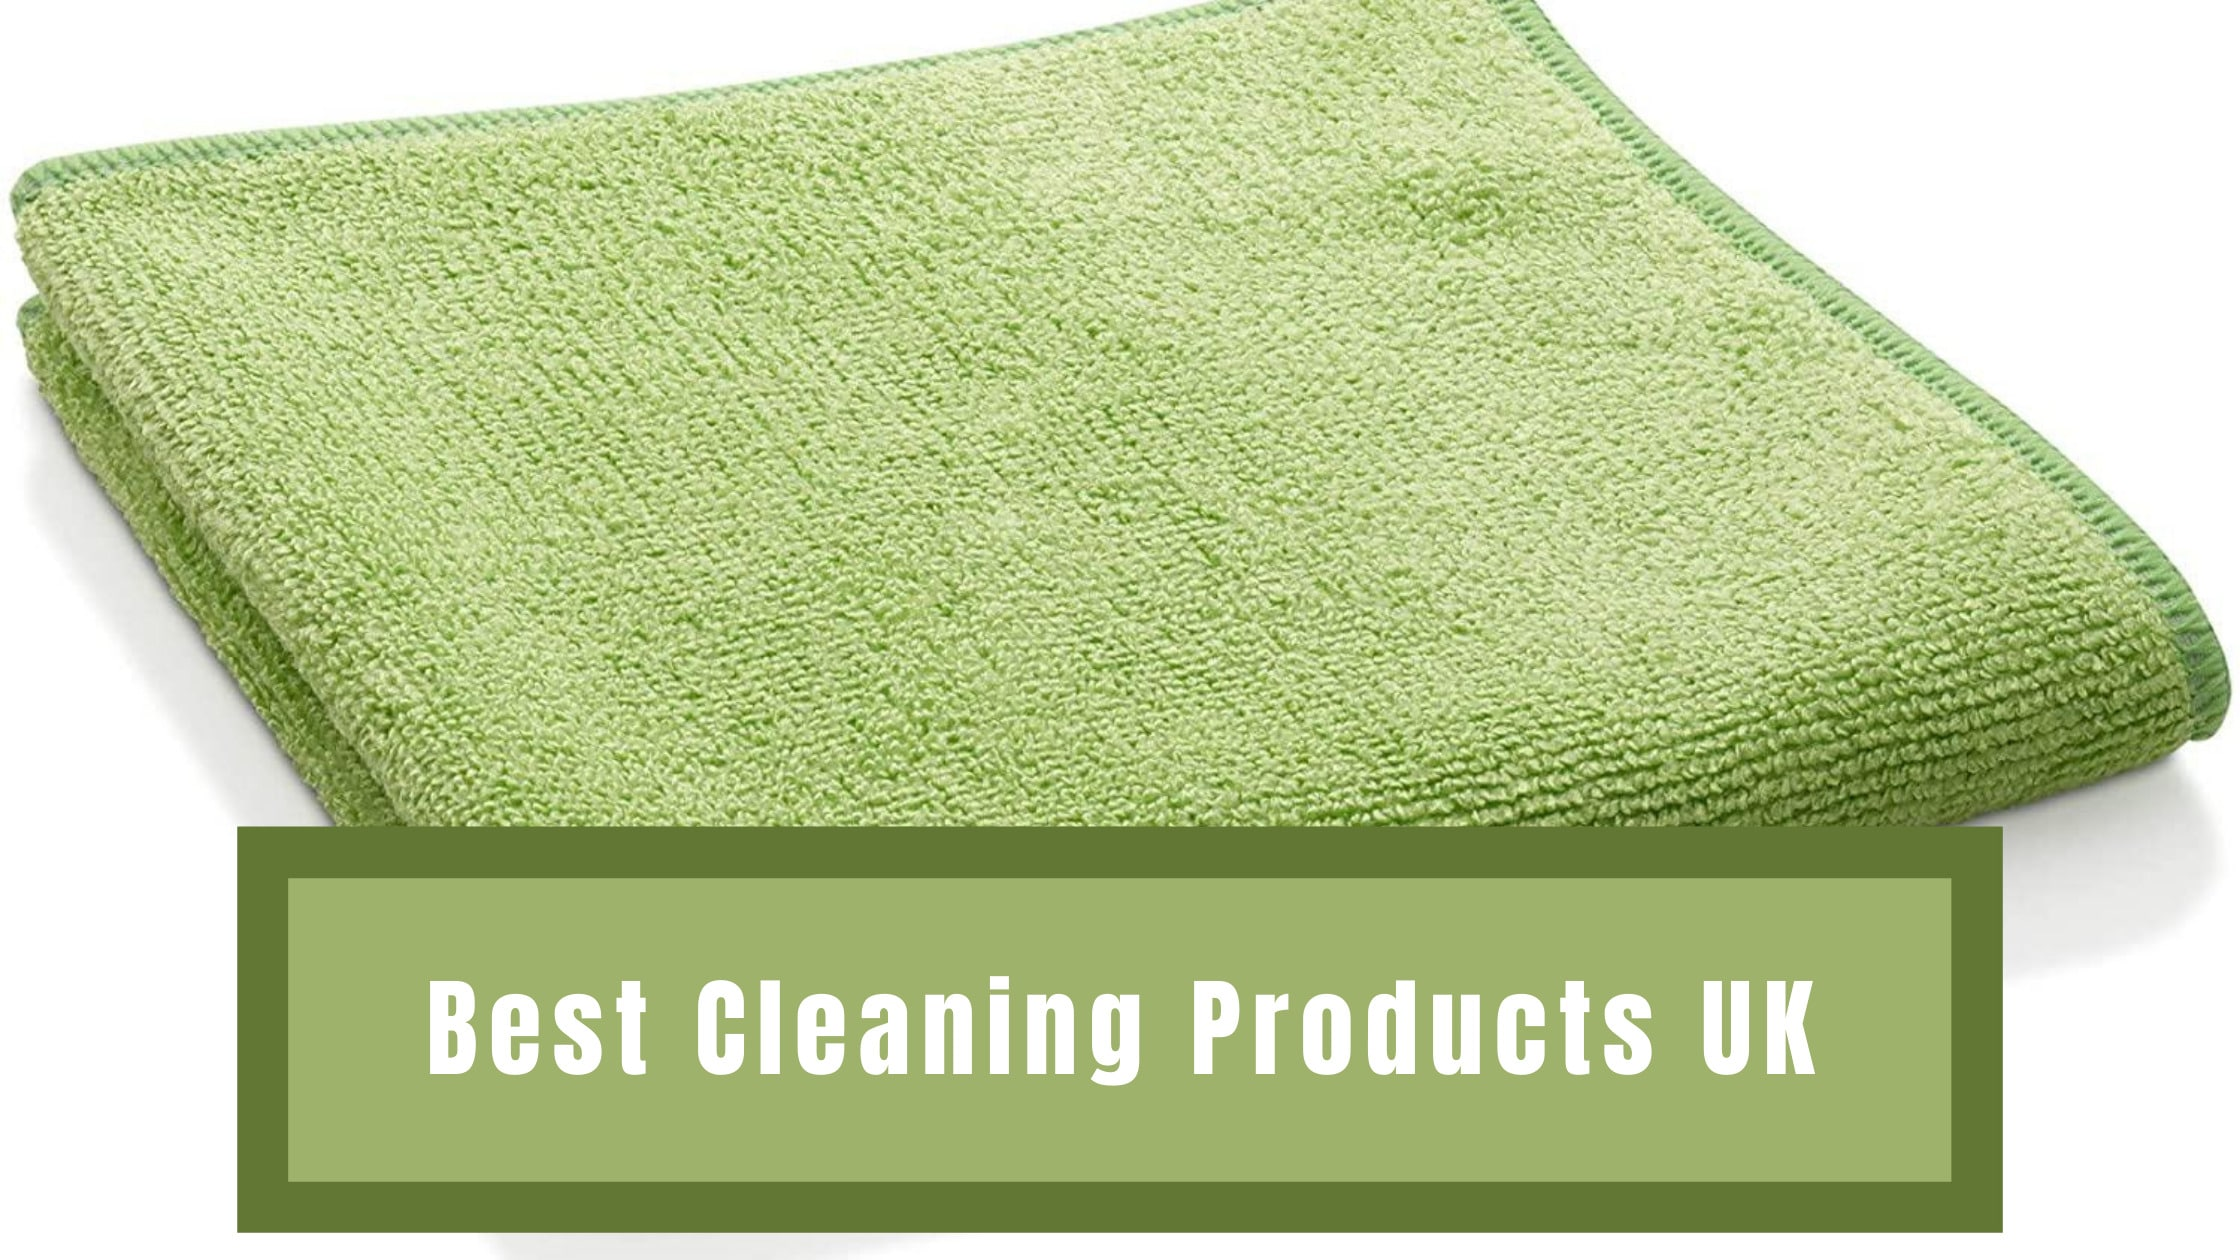 Best Cleaning Products UK